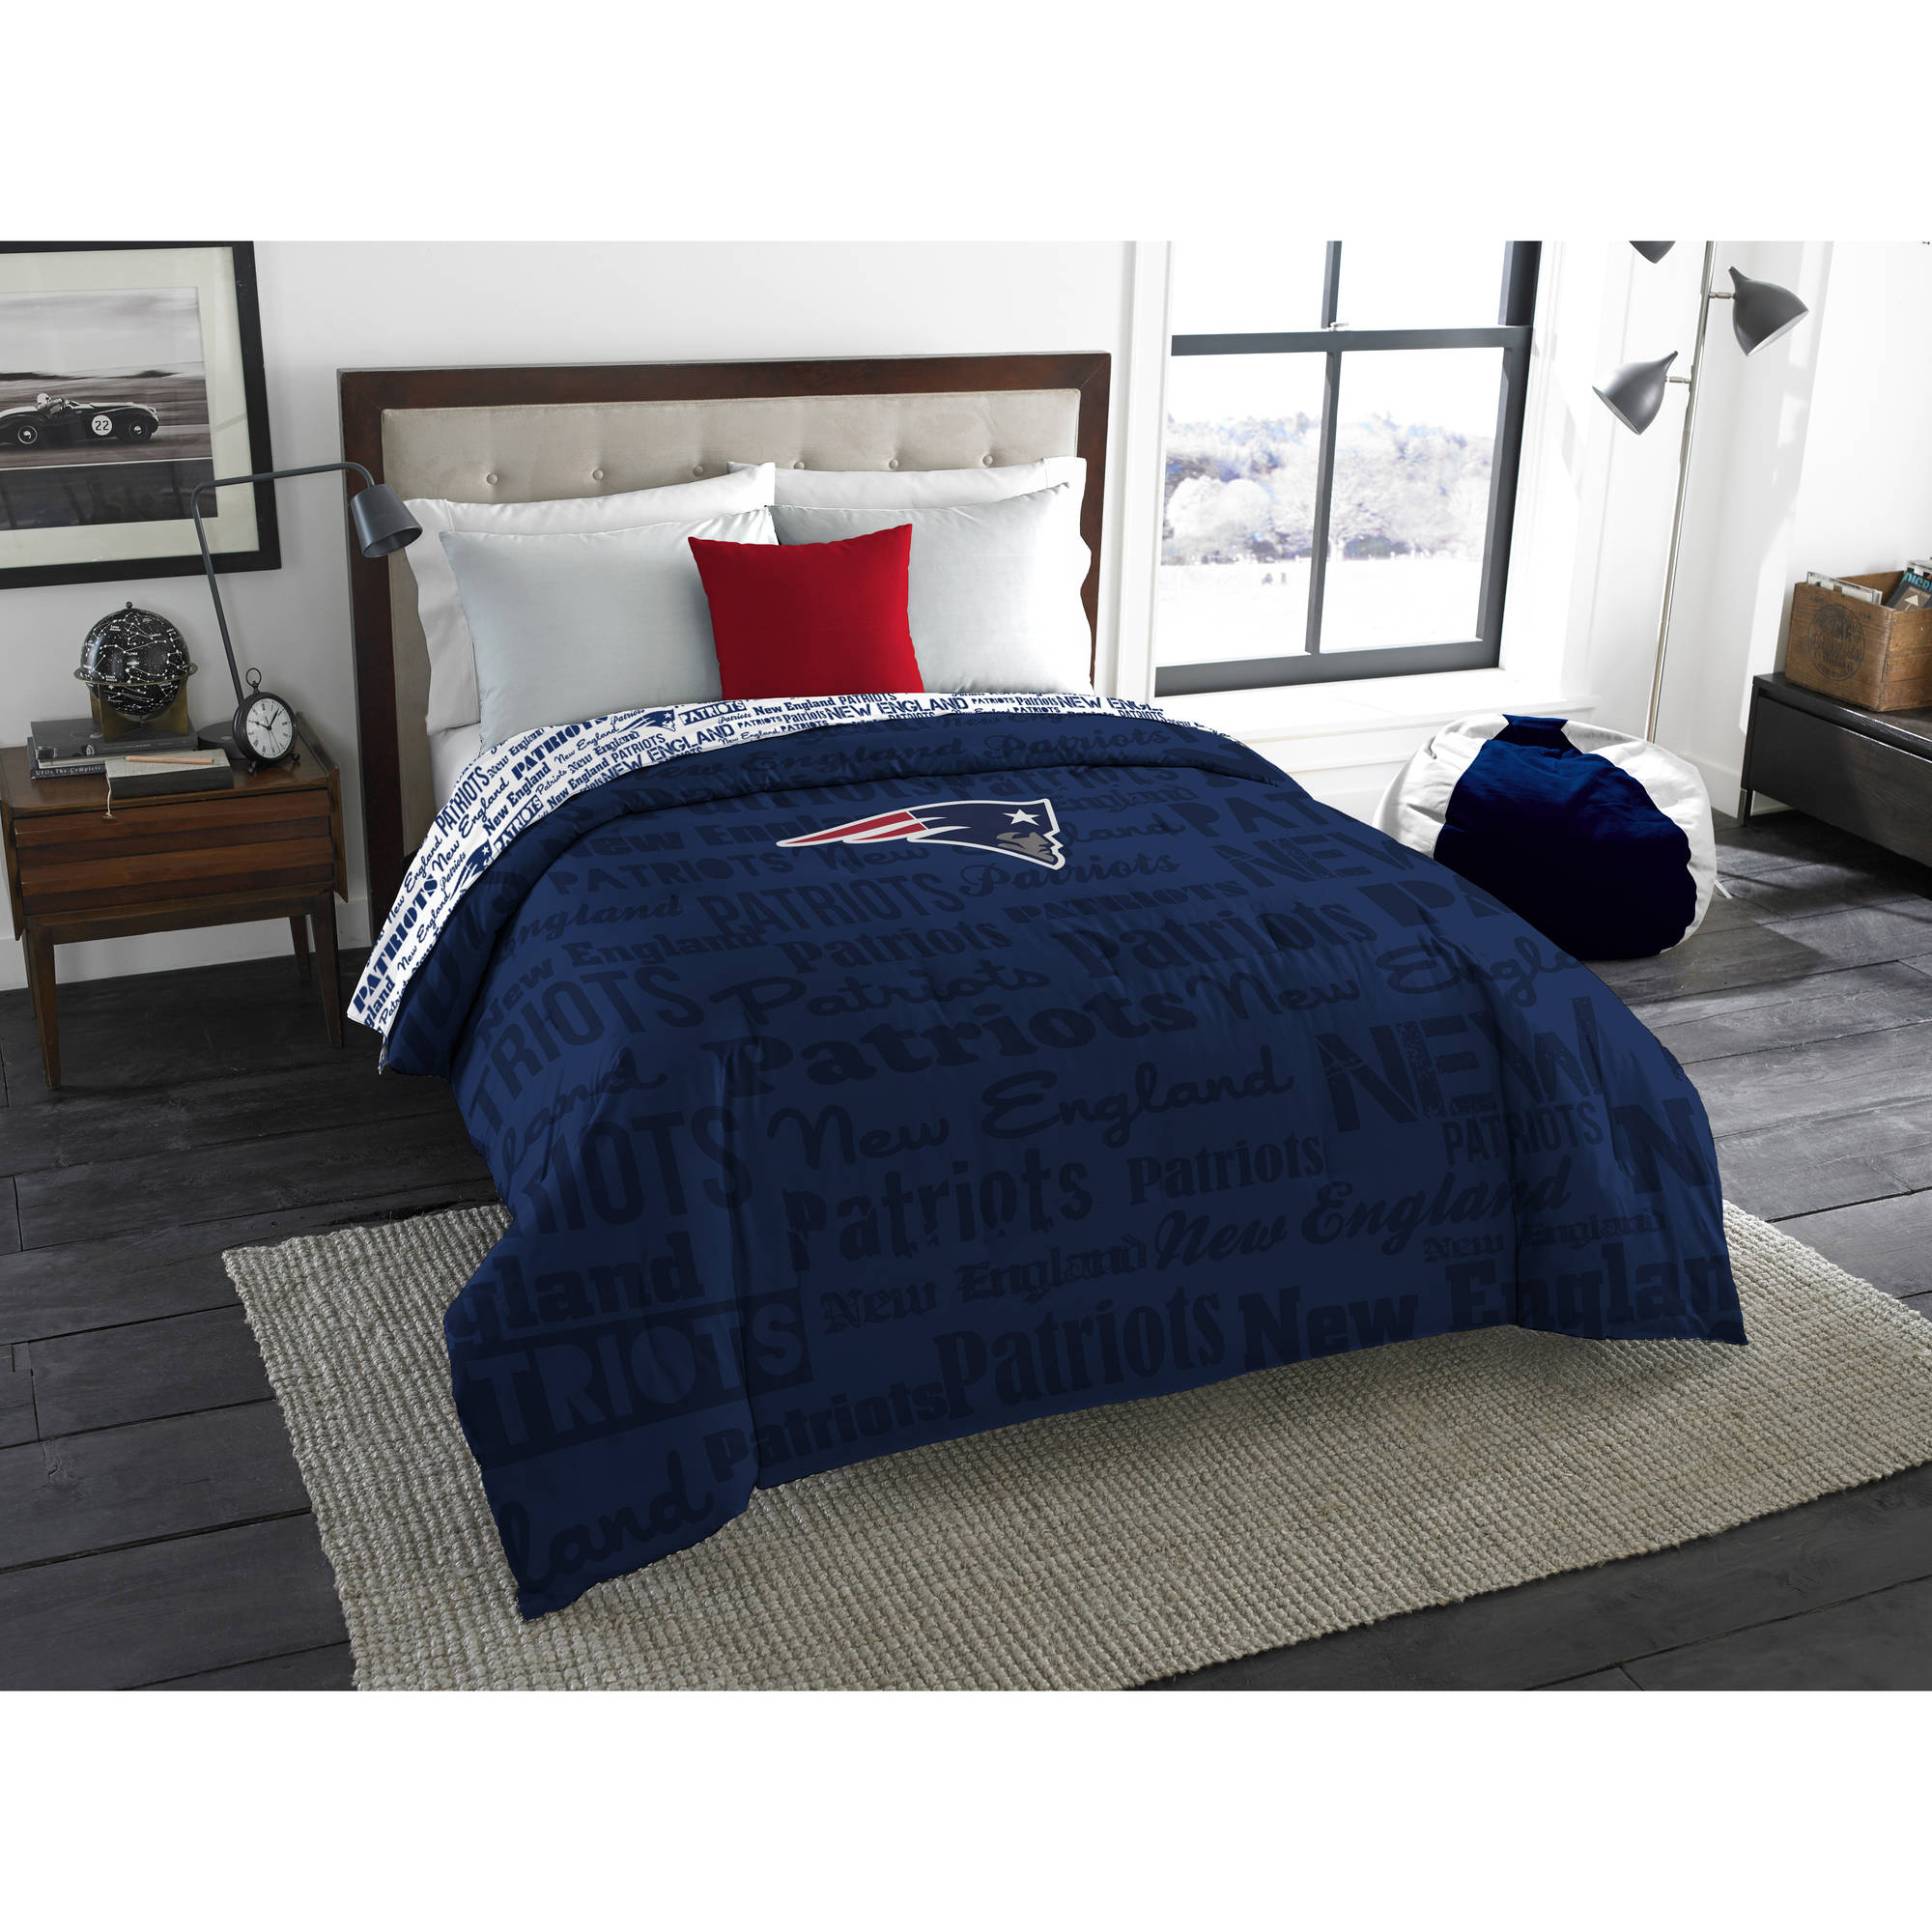 "NFL New England Patriots ""Anthem"" Twin/Full Bedding Comforter"